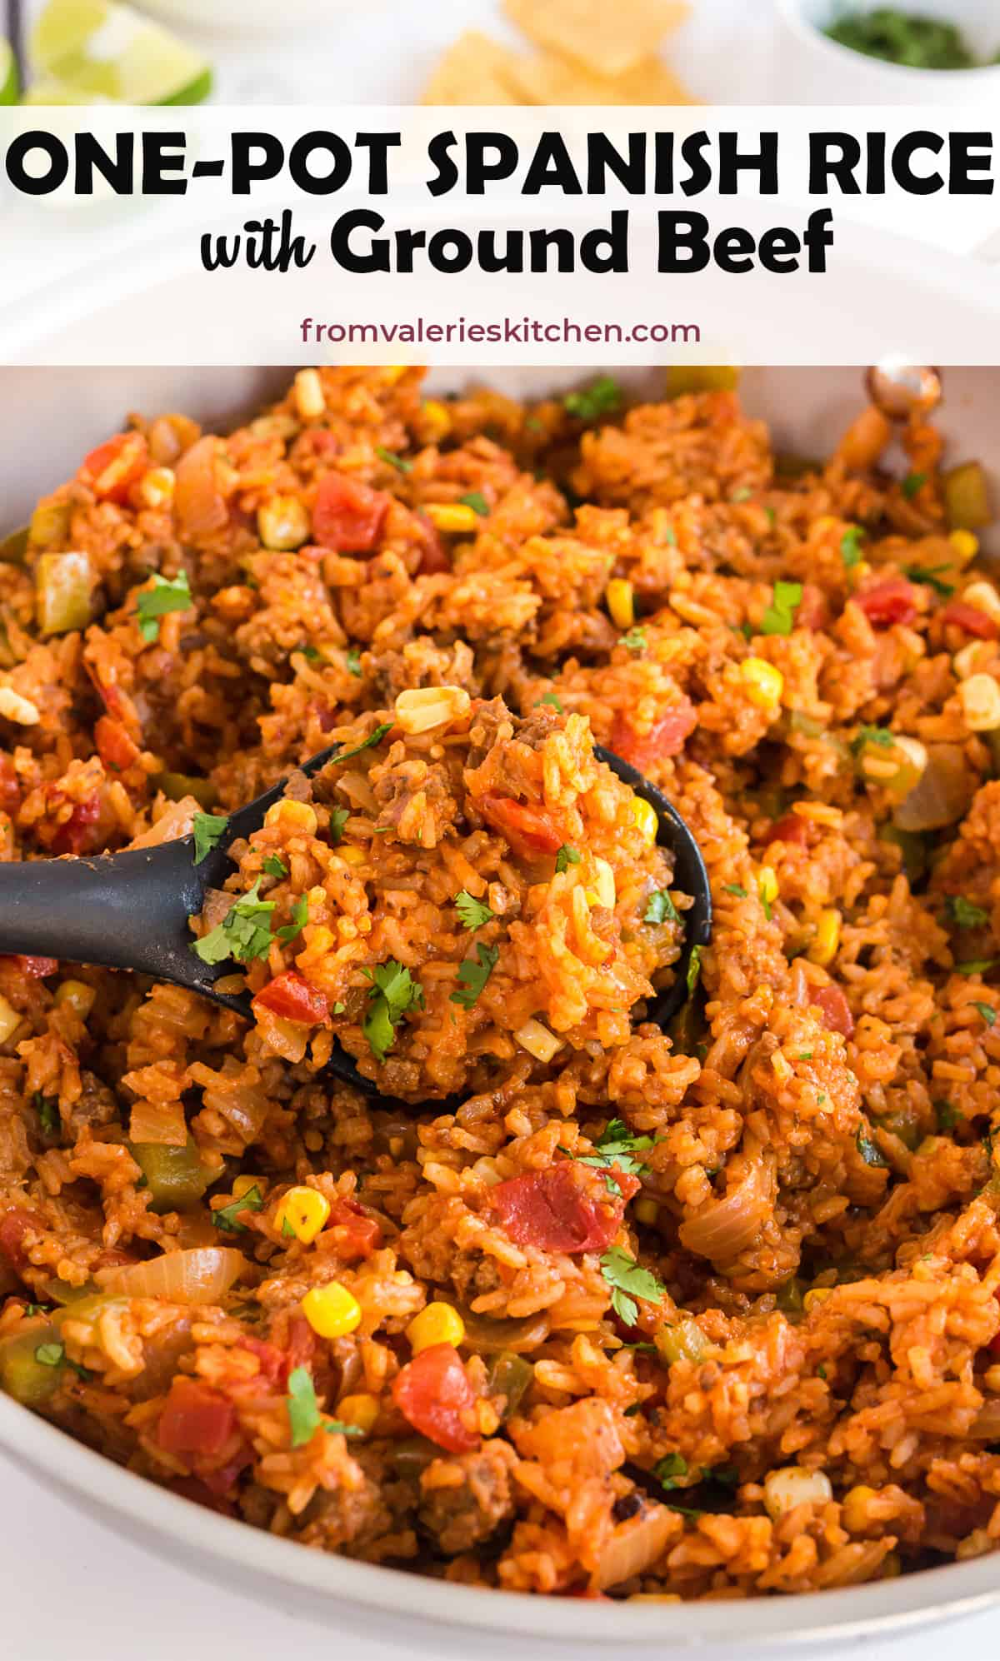 This Easy One Pot Spanish Rice With Ground Beef Is An Excellent Side Dish Choice Or Add Your Favorite Toppings For An In 2020 Spanish Rice Ground Beef Mexican Entrees